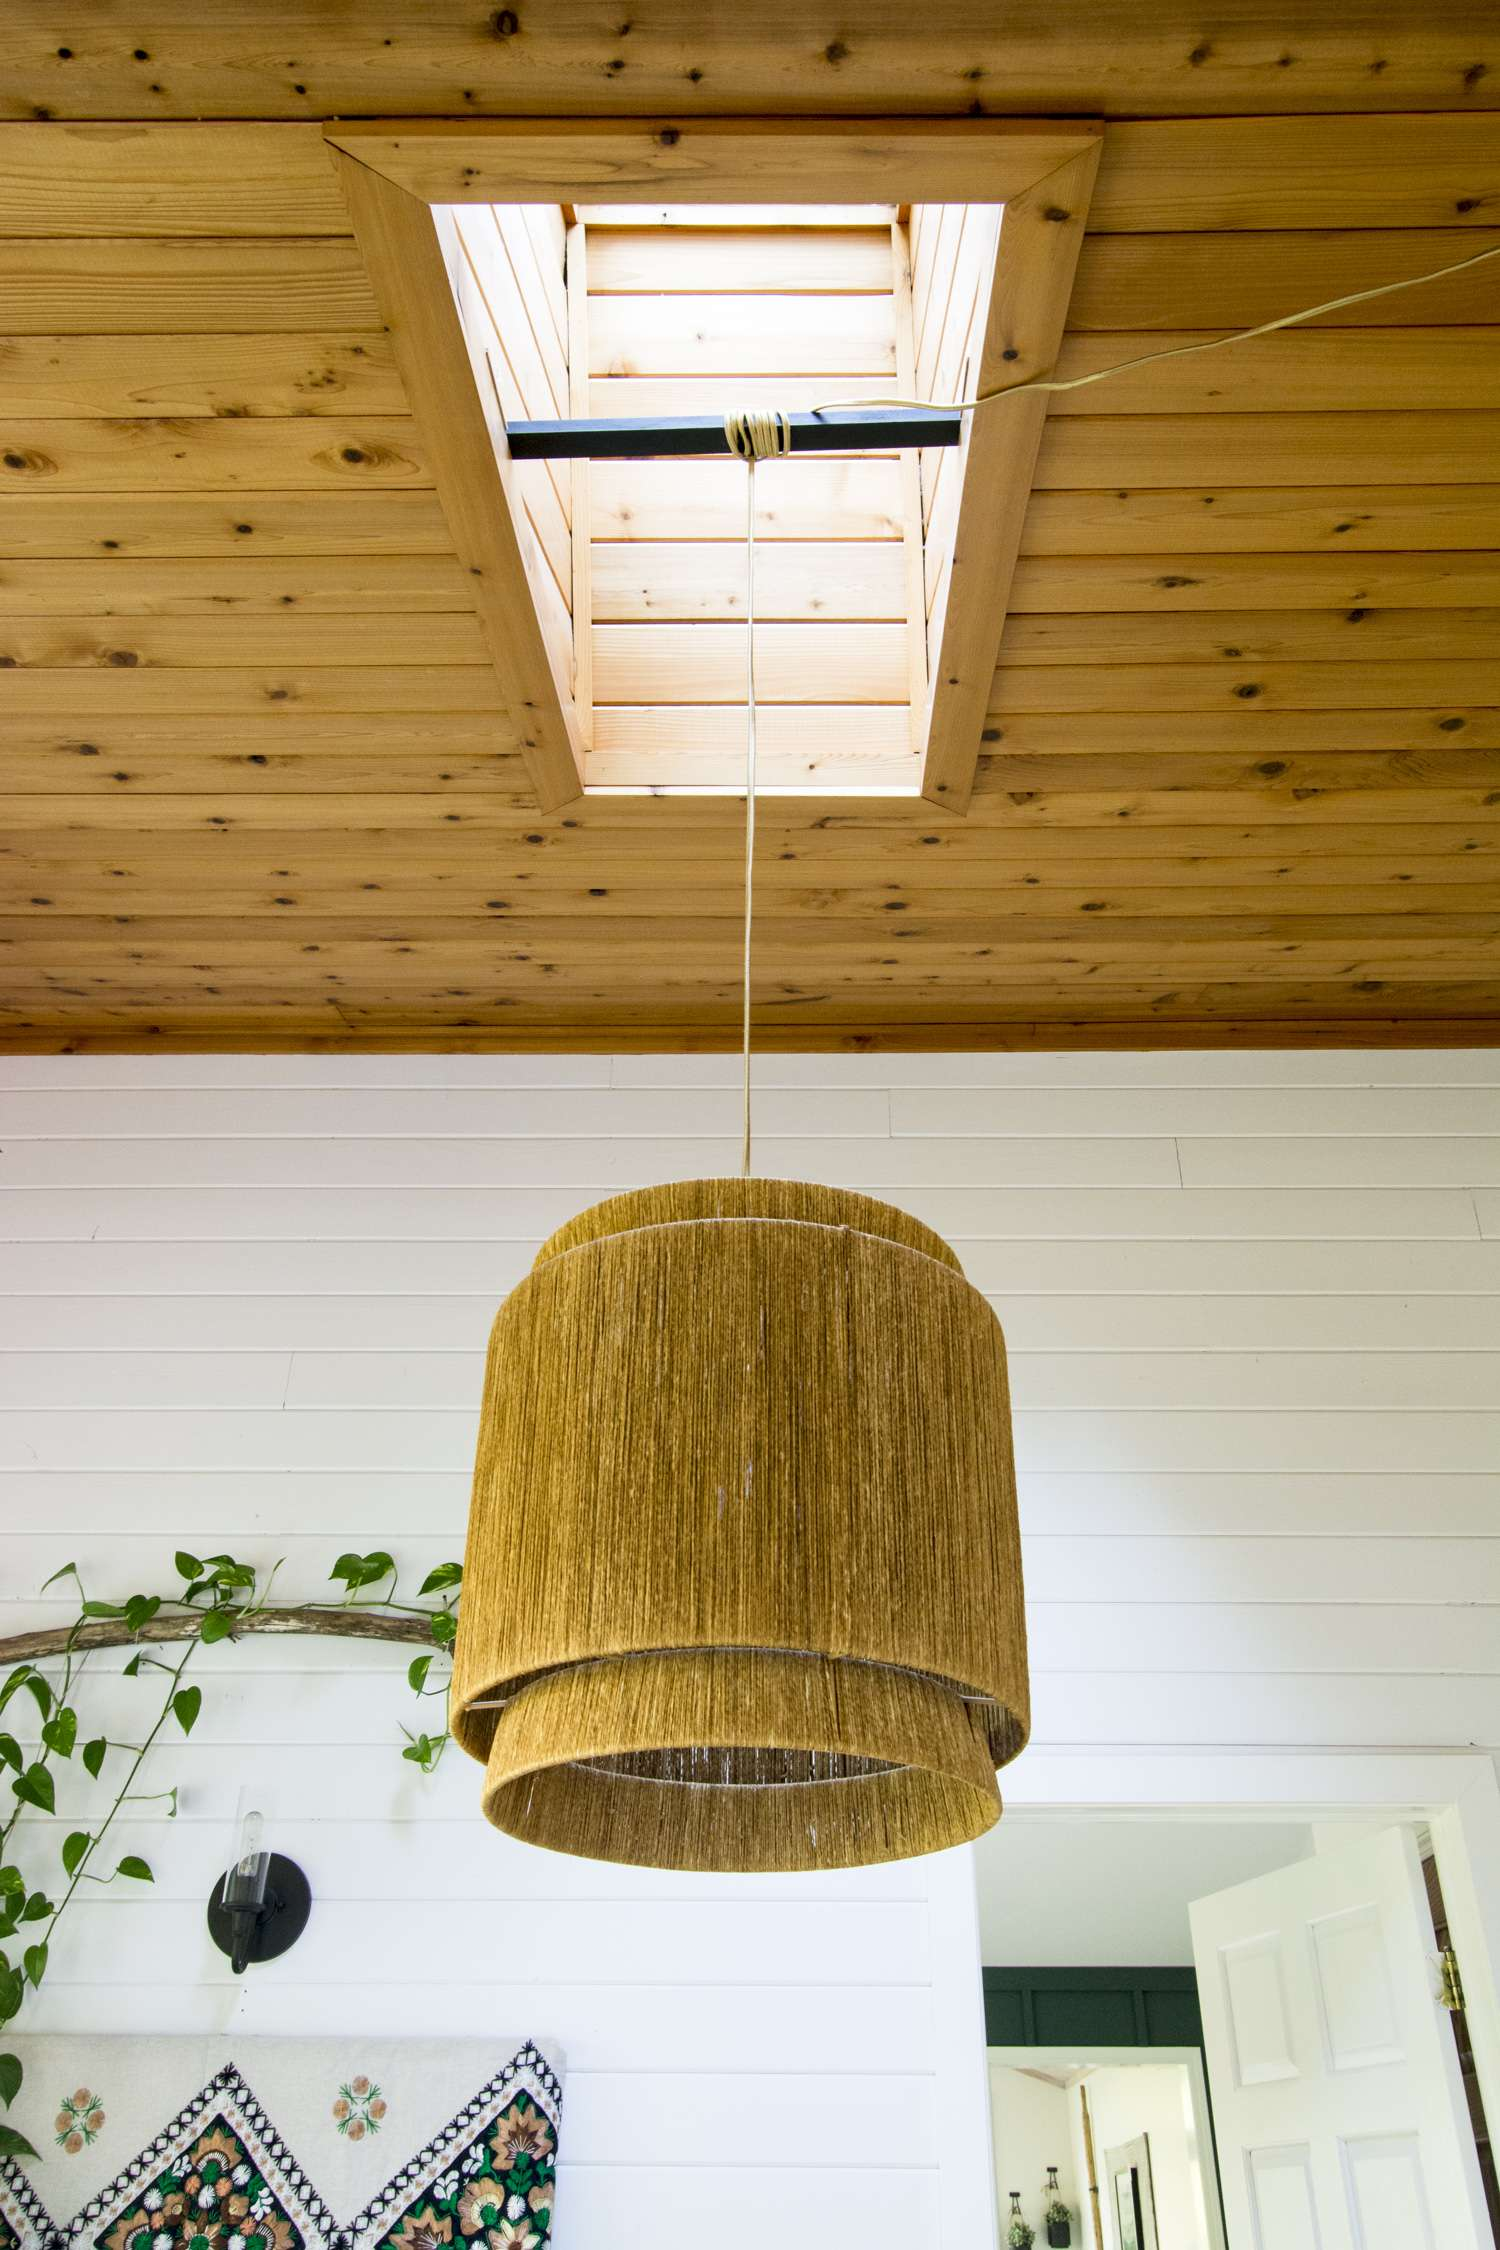 Hanging a pendant light from a skylight.